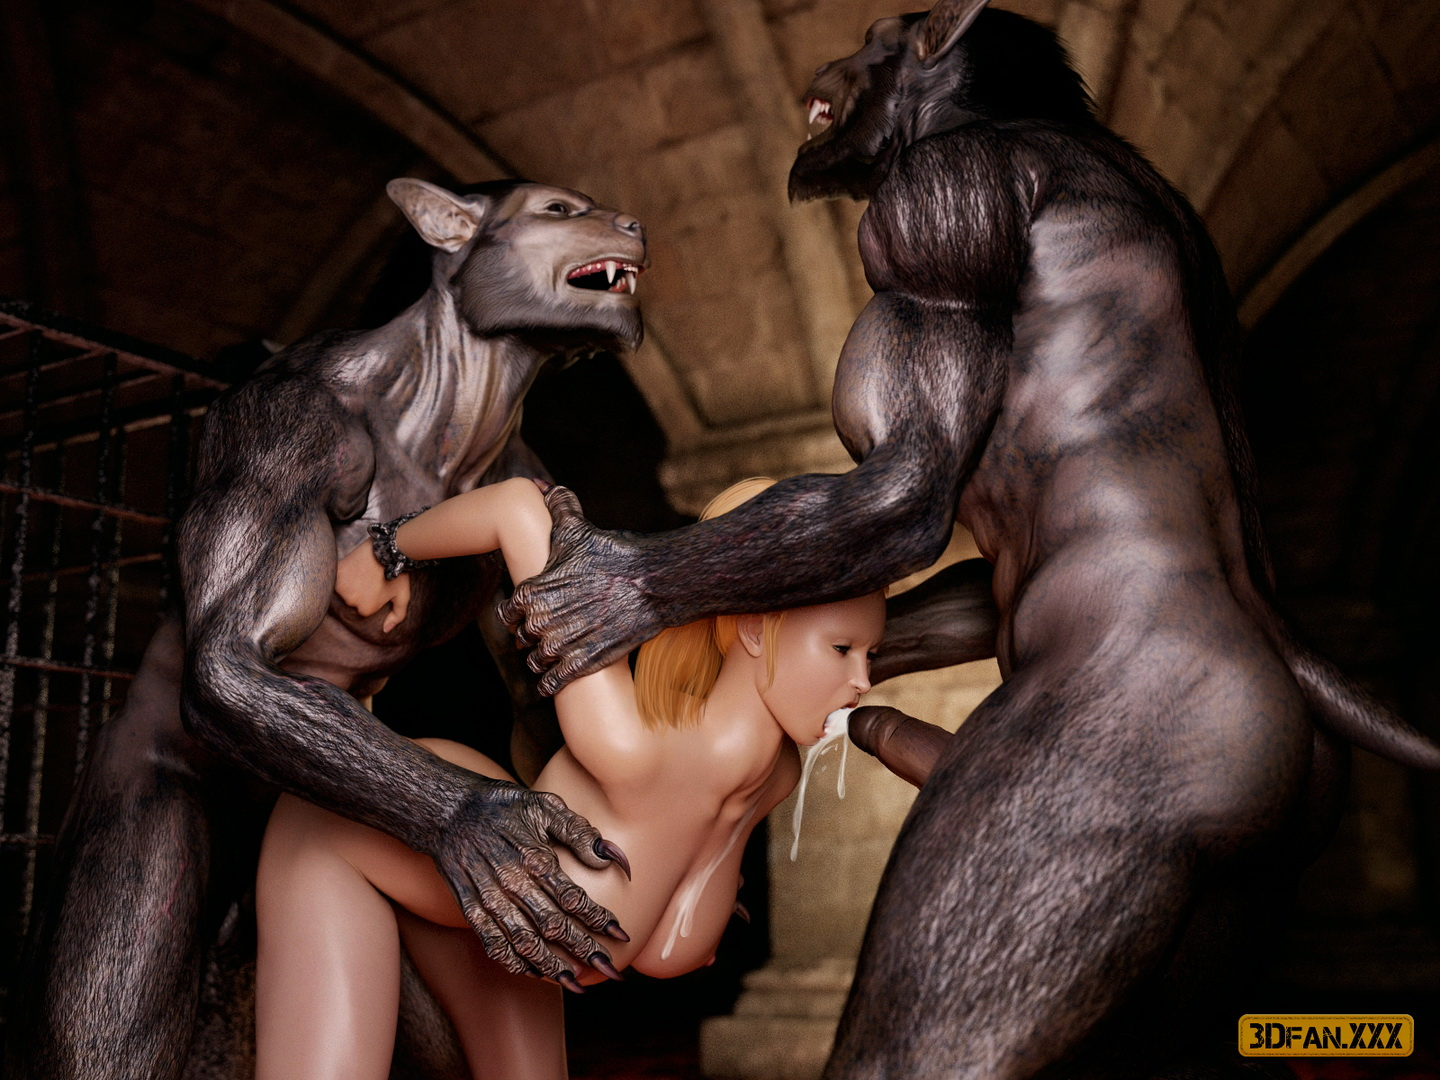 3d monster fuck erotic photo